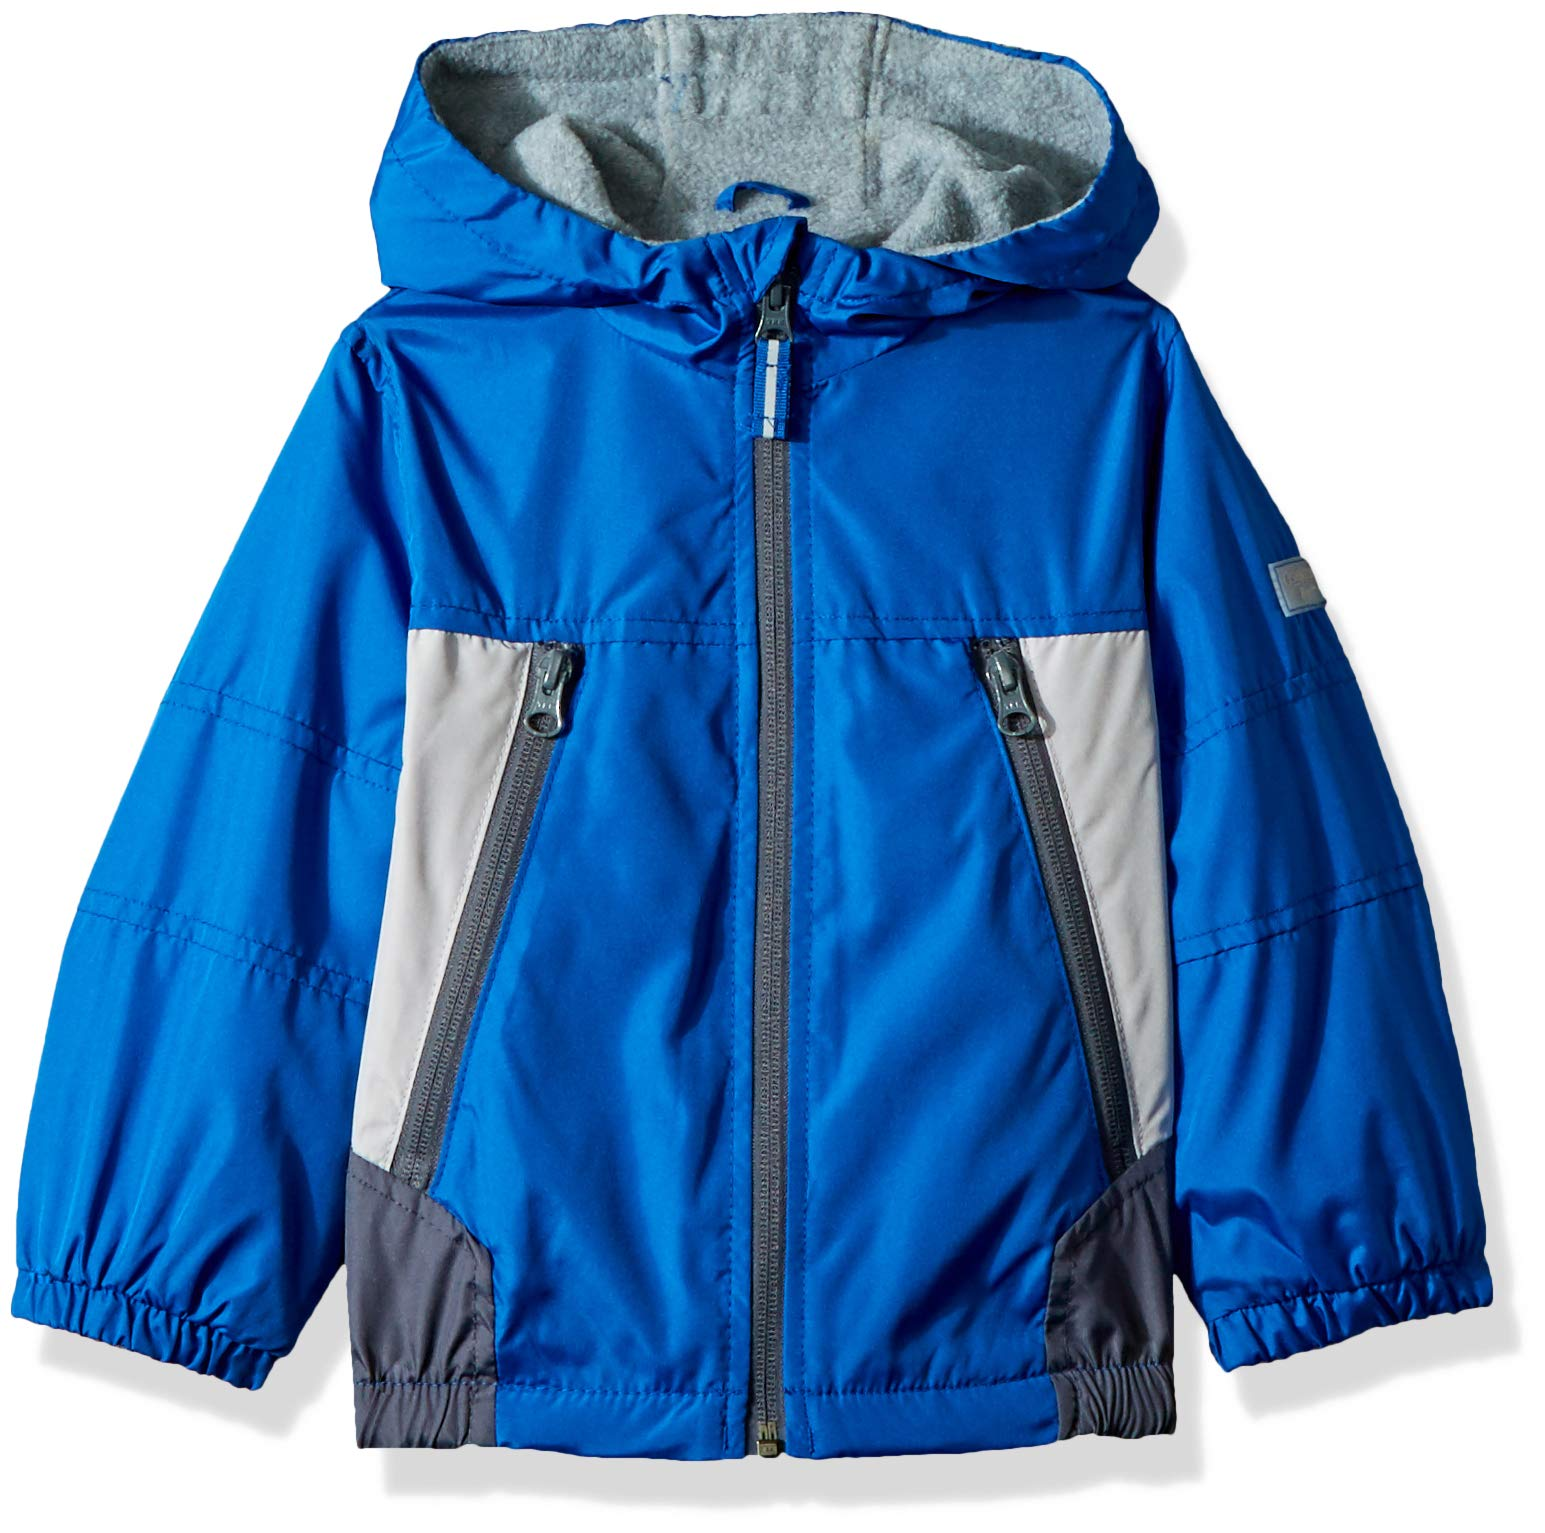 Osh Kosh Toddler Boys' Great Midweight Jacket, Cosmic Cobalt/Silver/Grey, 3T by OshKosh B'Gosh